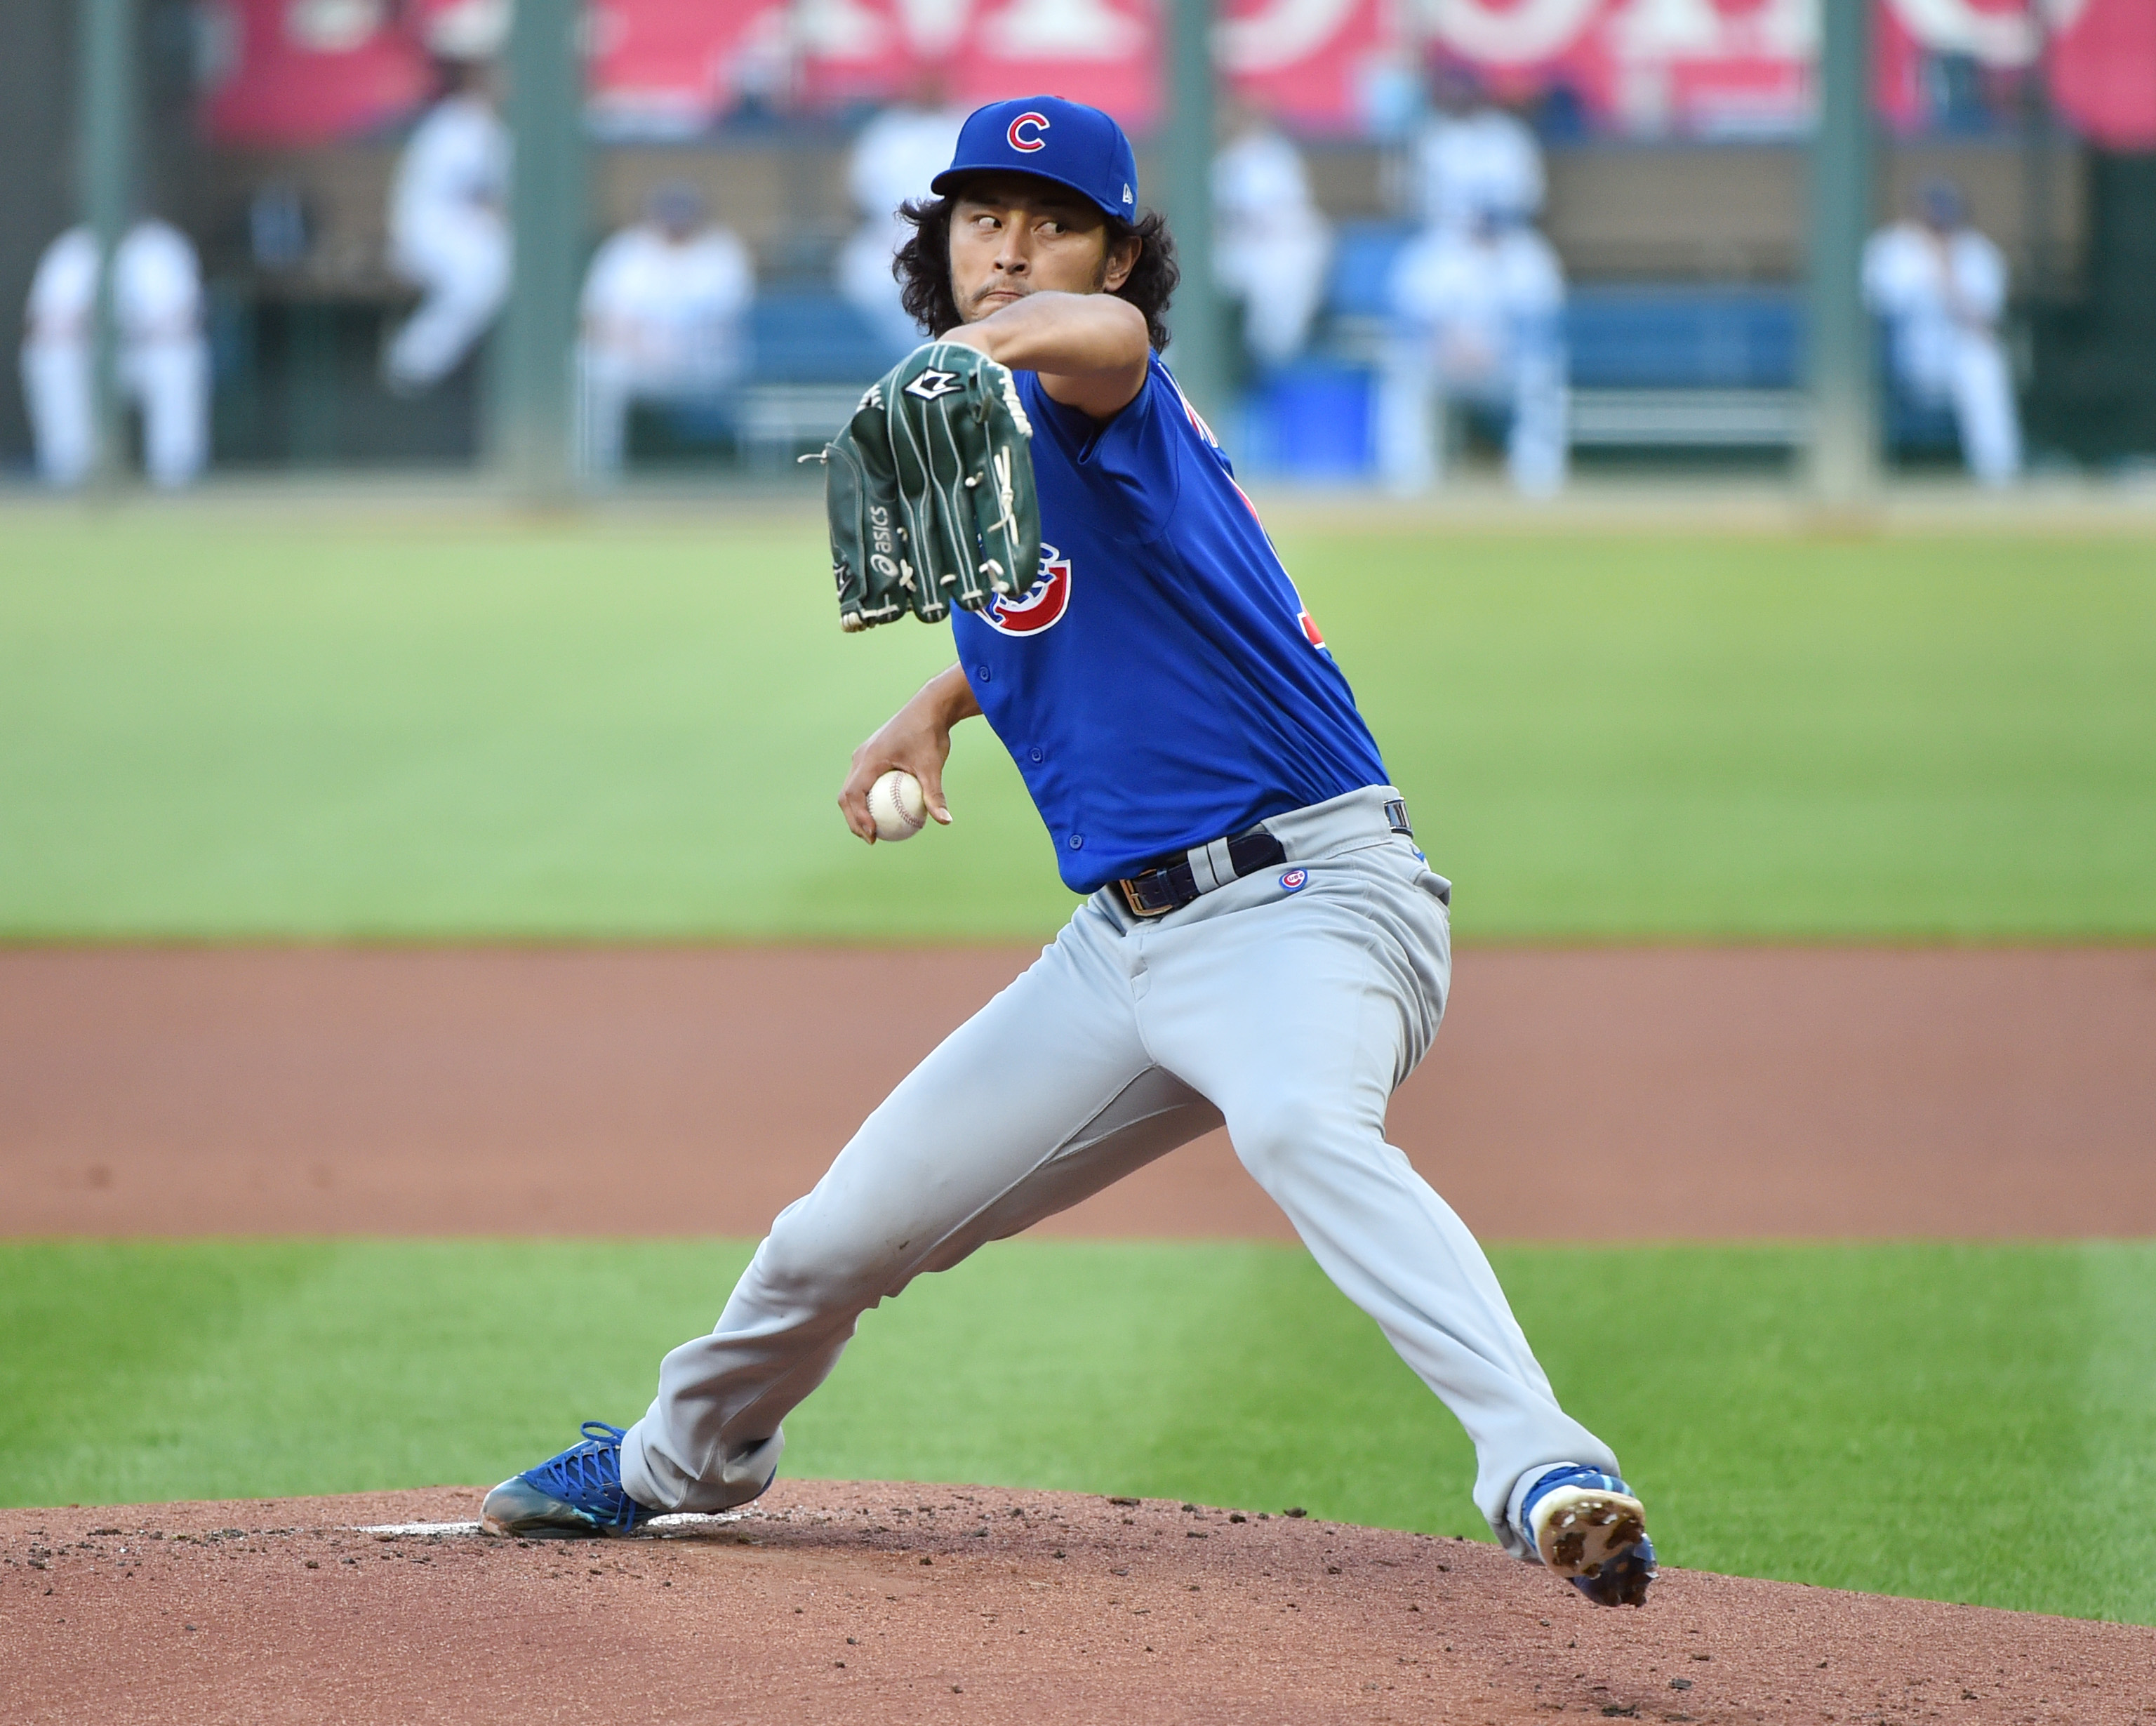 Starting pitcher Yu Darvish #11 of the Chicago Cubs throws in the first inning against the Kansas City Royals at Kauffman Stadium on August 05, 2020 in Kansas City, Missouri.